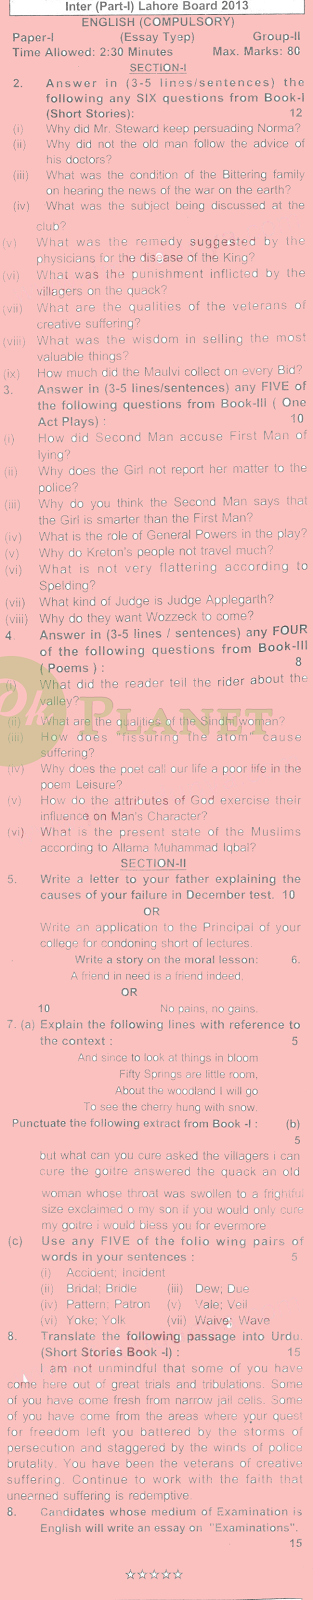 Inter Part 1 English Past Papers Lahore Board 2013